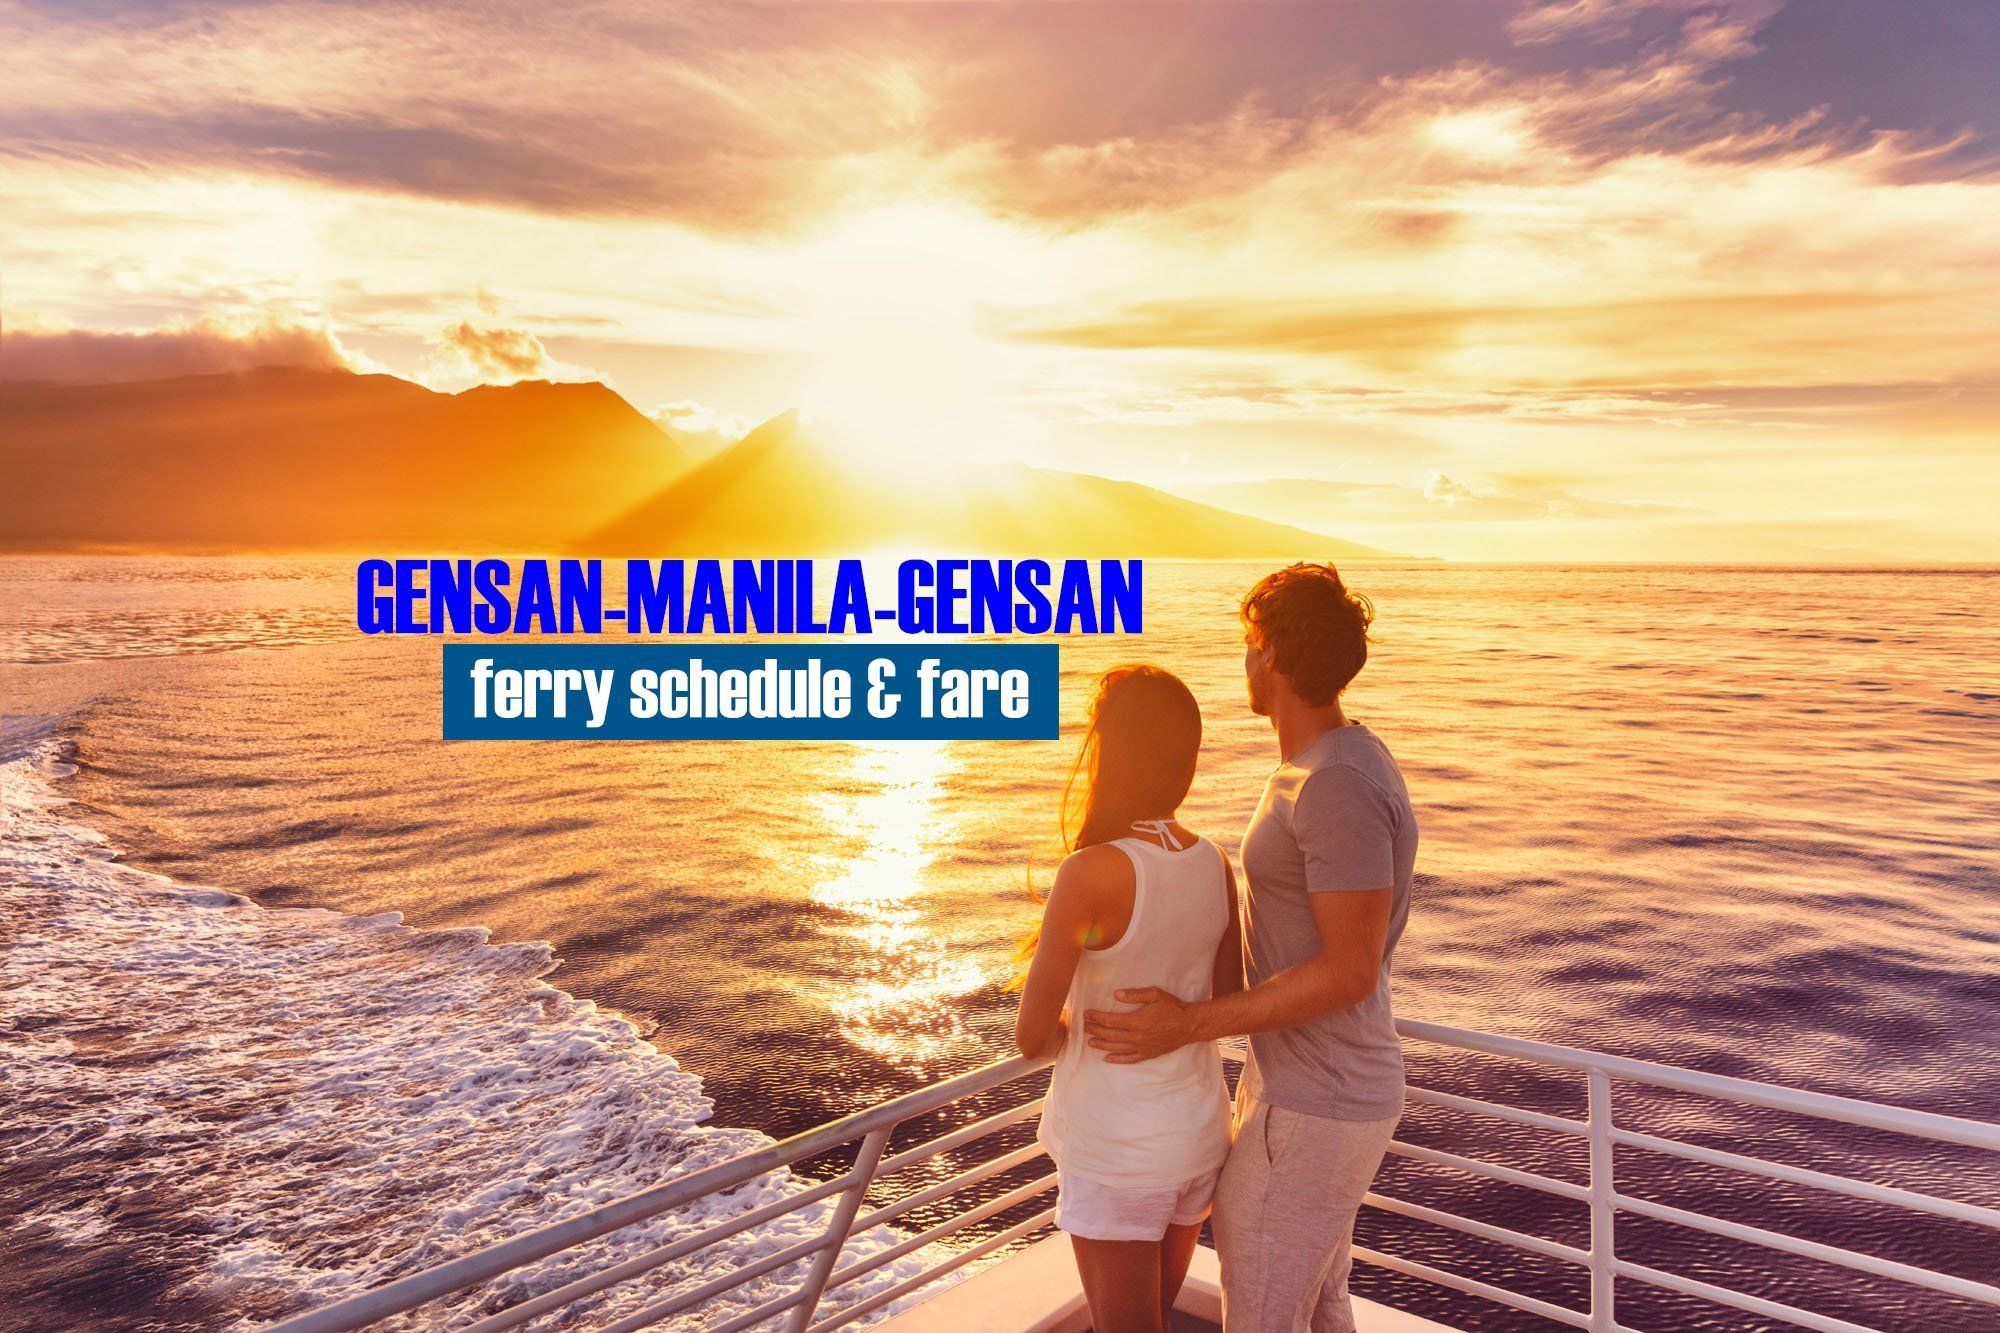 General Santos to Manila: 2019 Boat Schedule and Fare